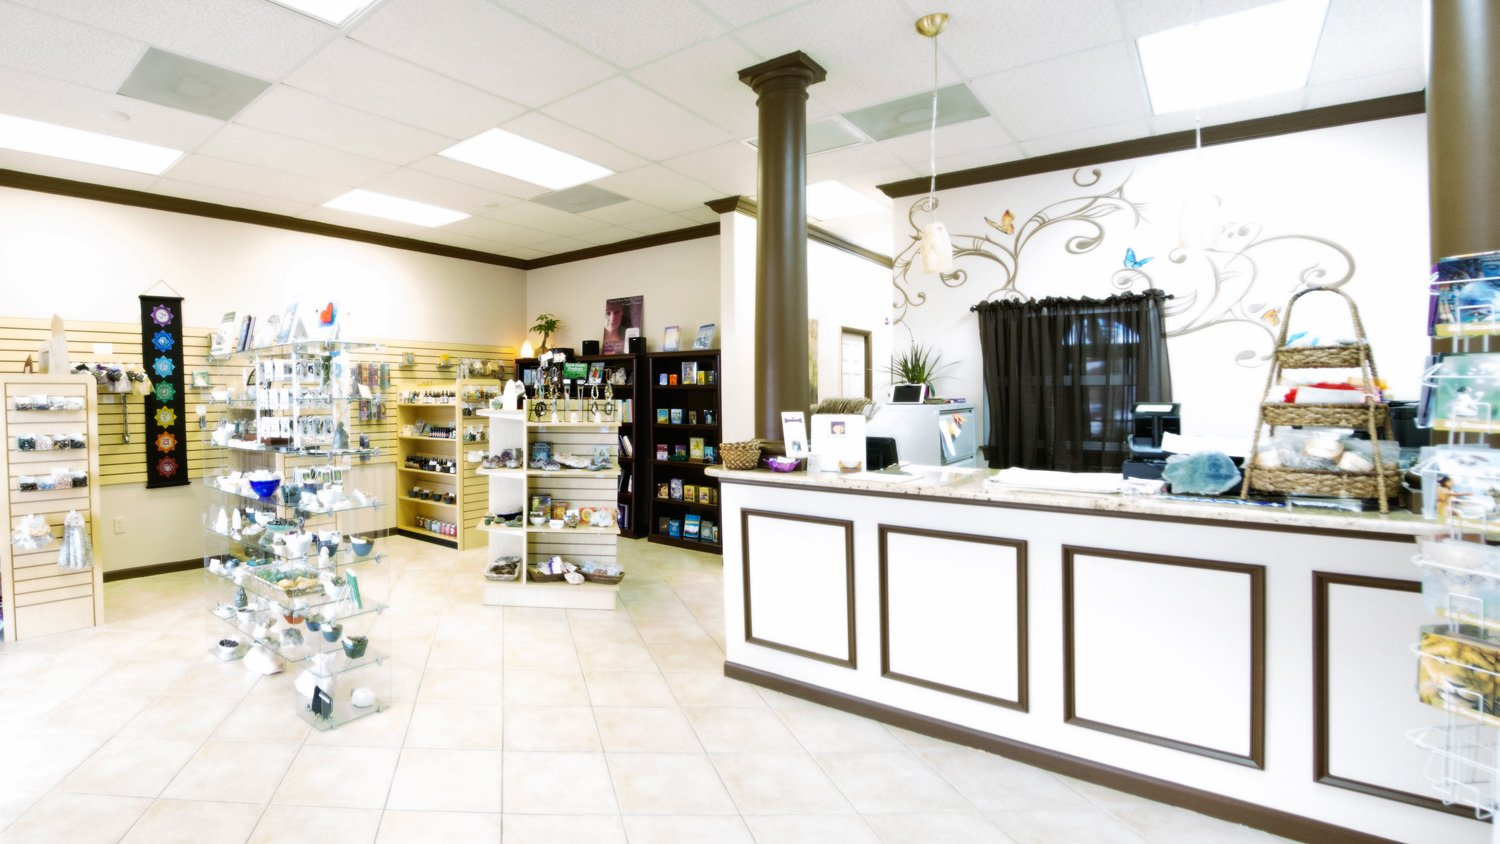 Bonita Springs metaphysical store.